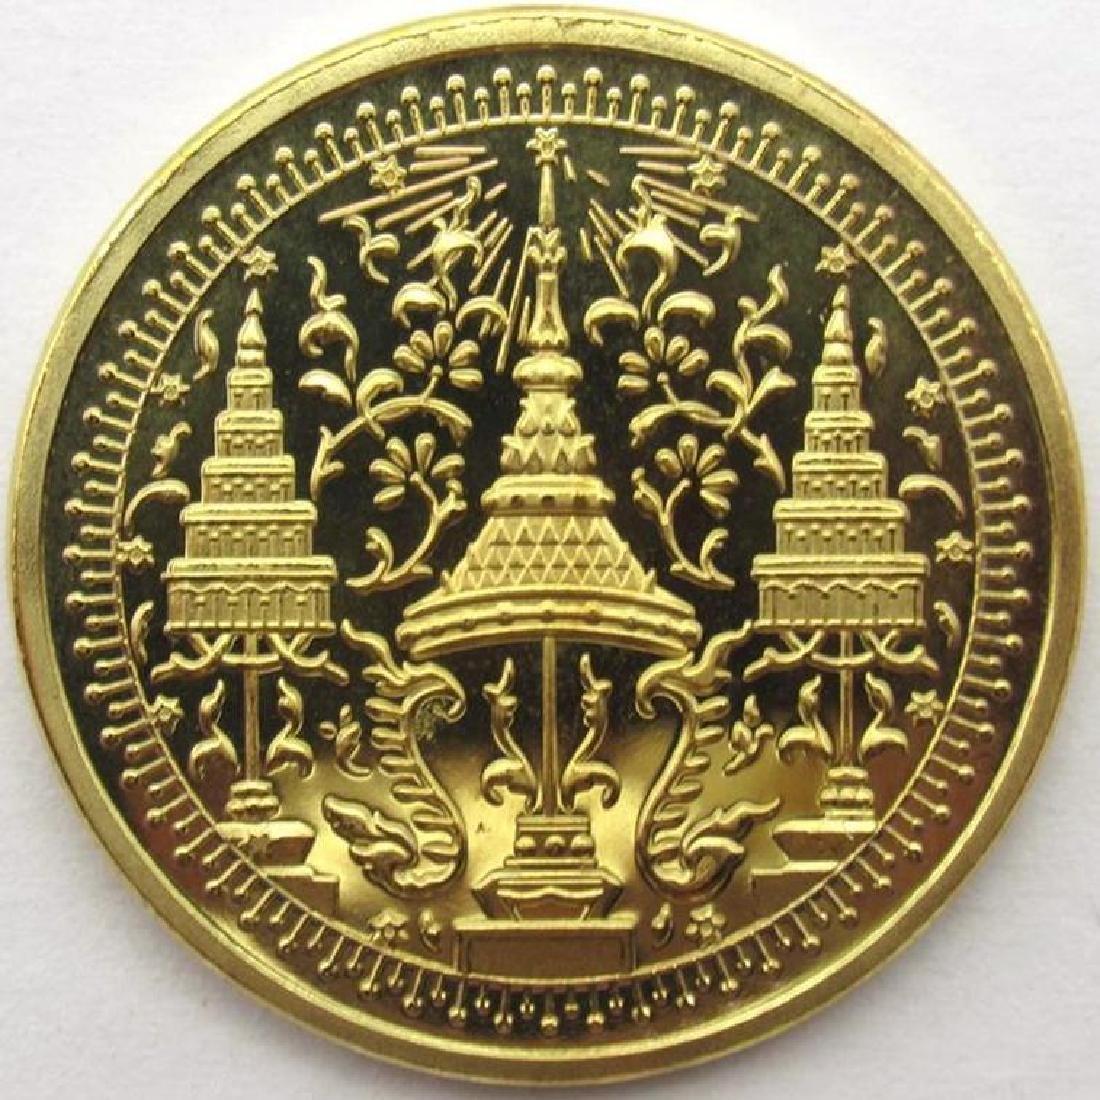 Buddhist Elephant And Temples Commemorative Coin - 2